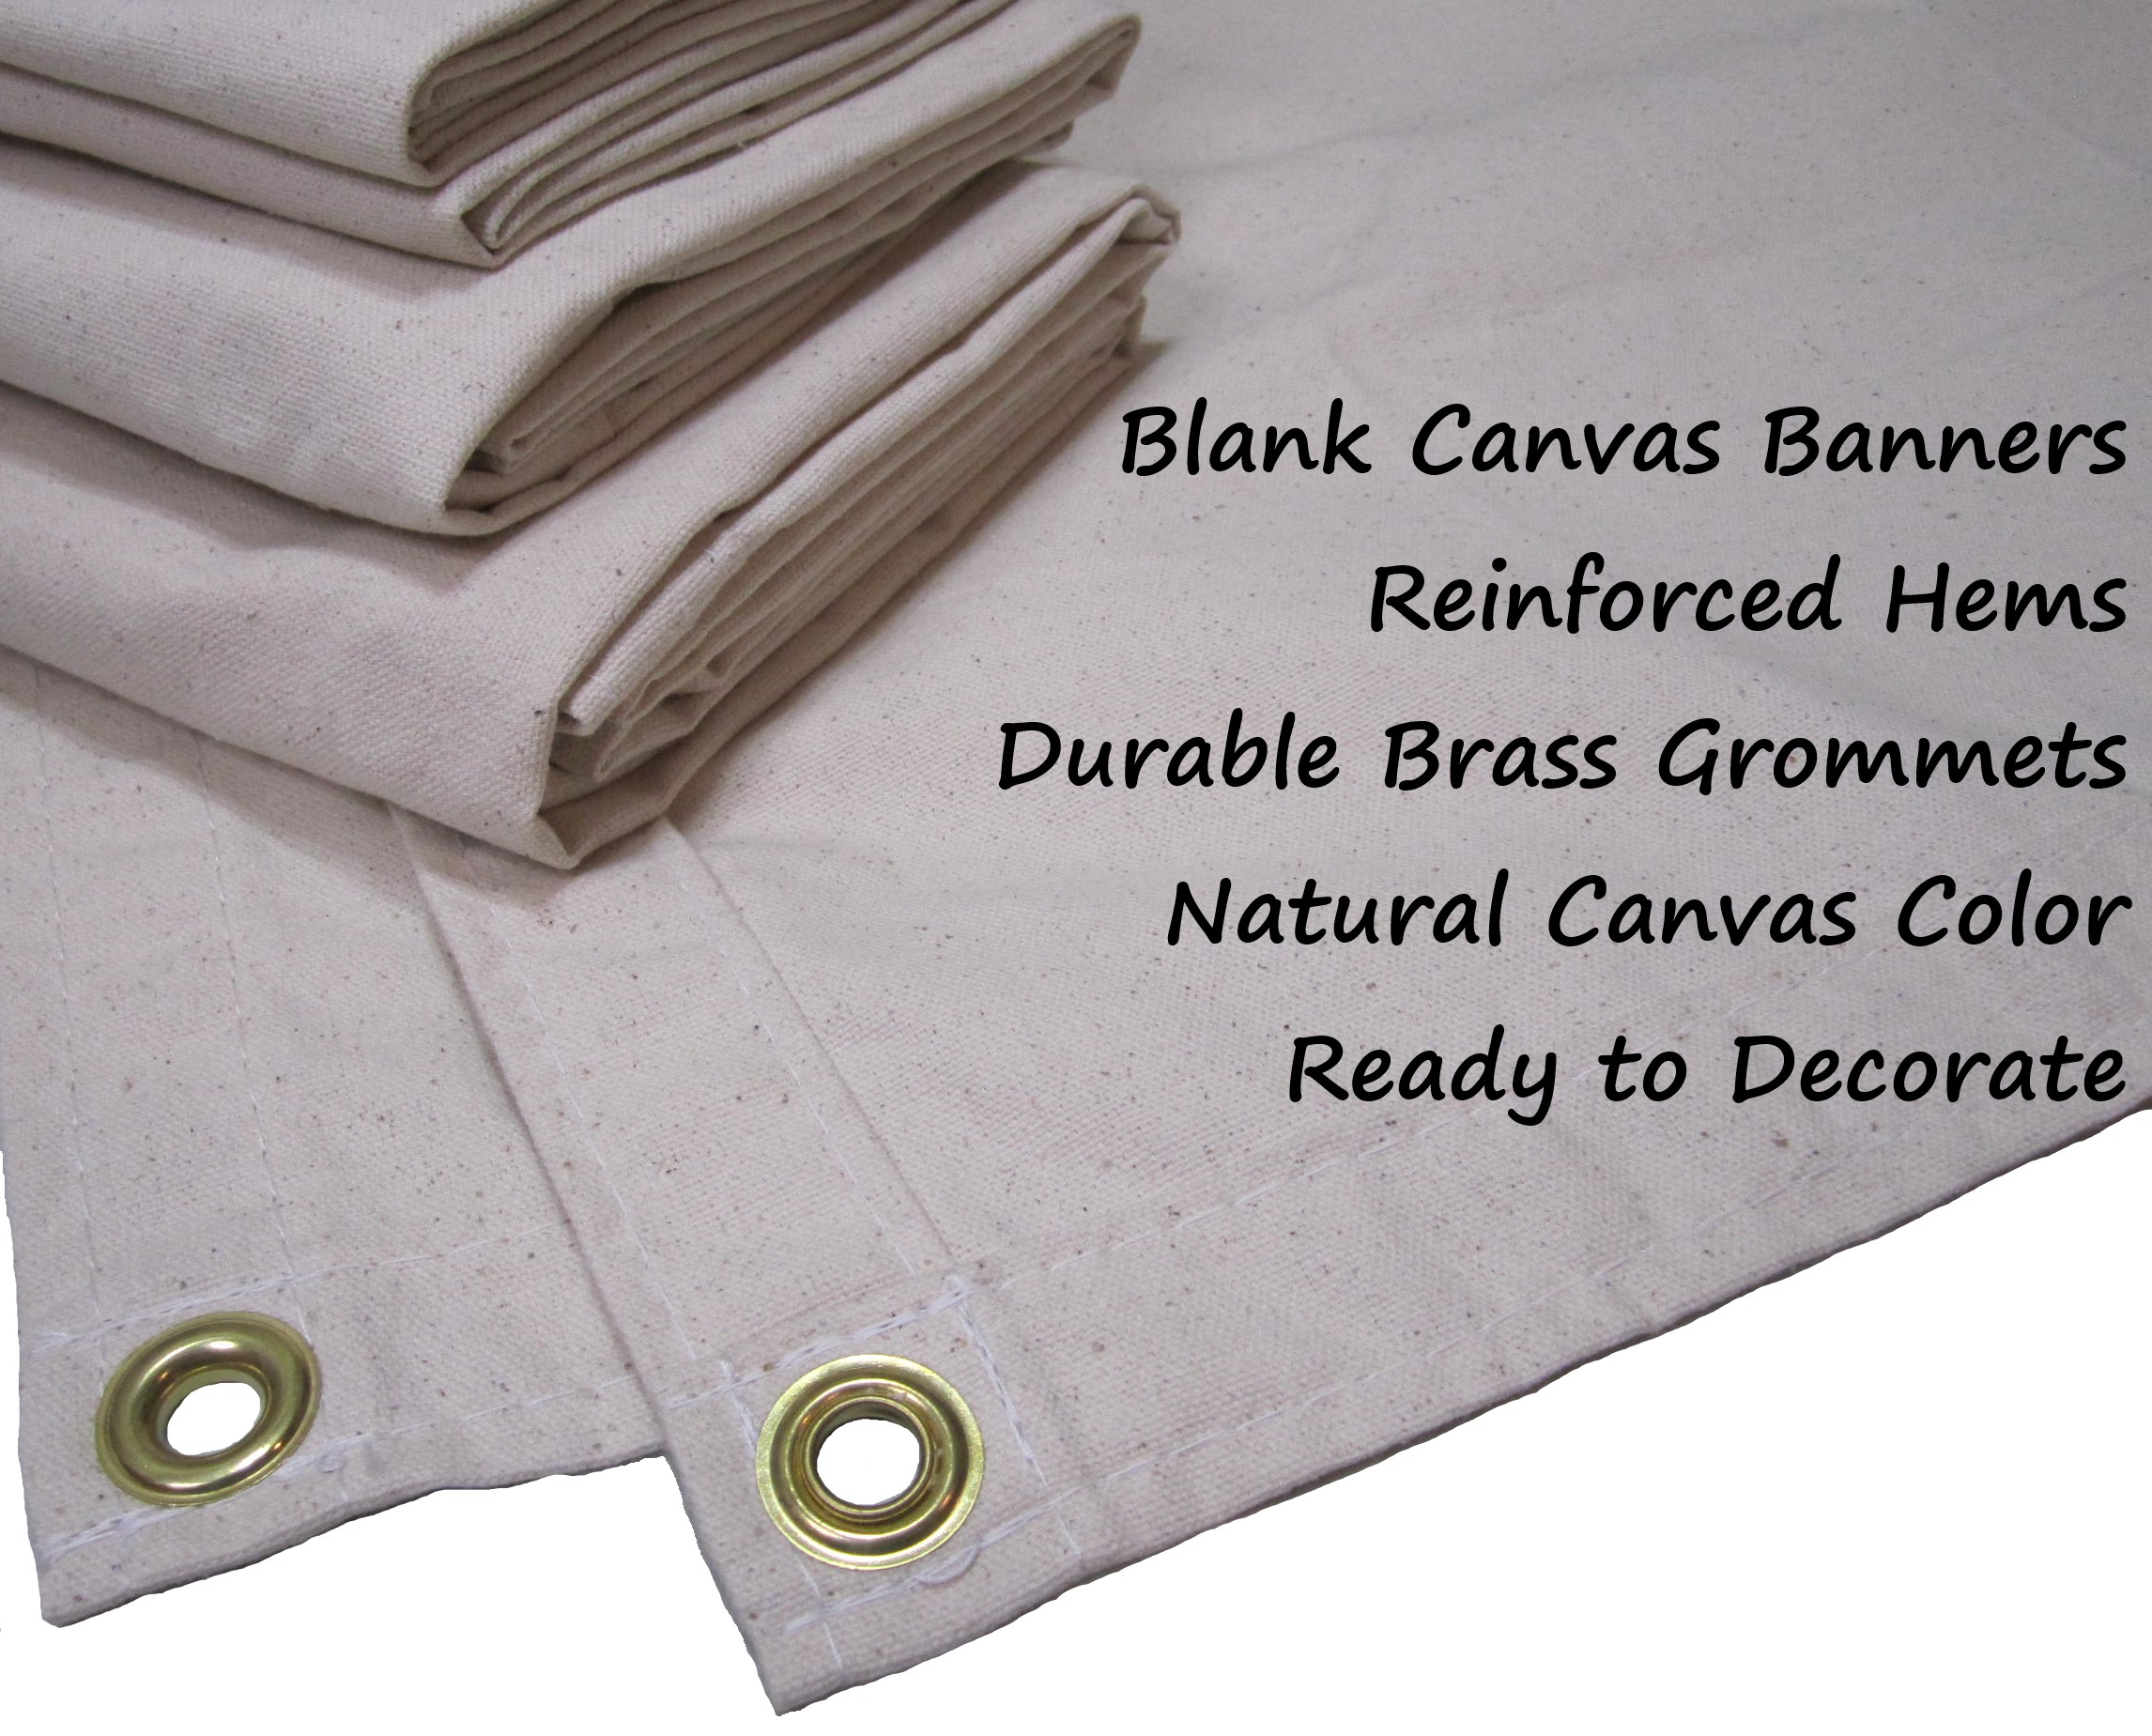 Blank Canvas Banners